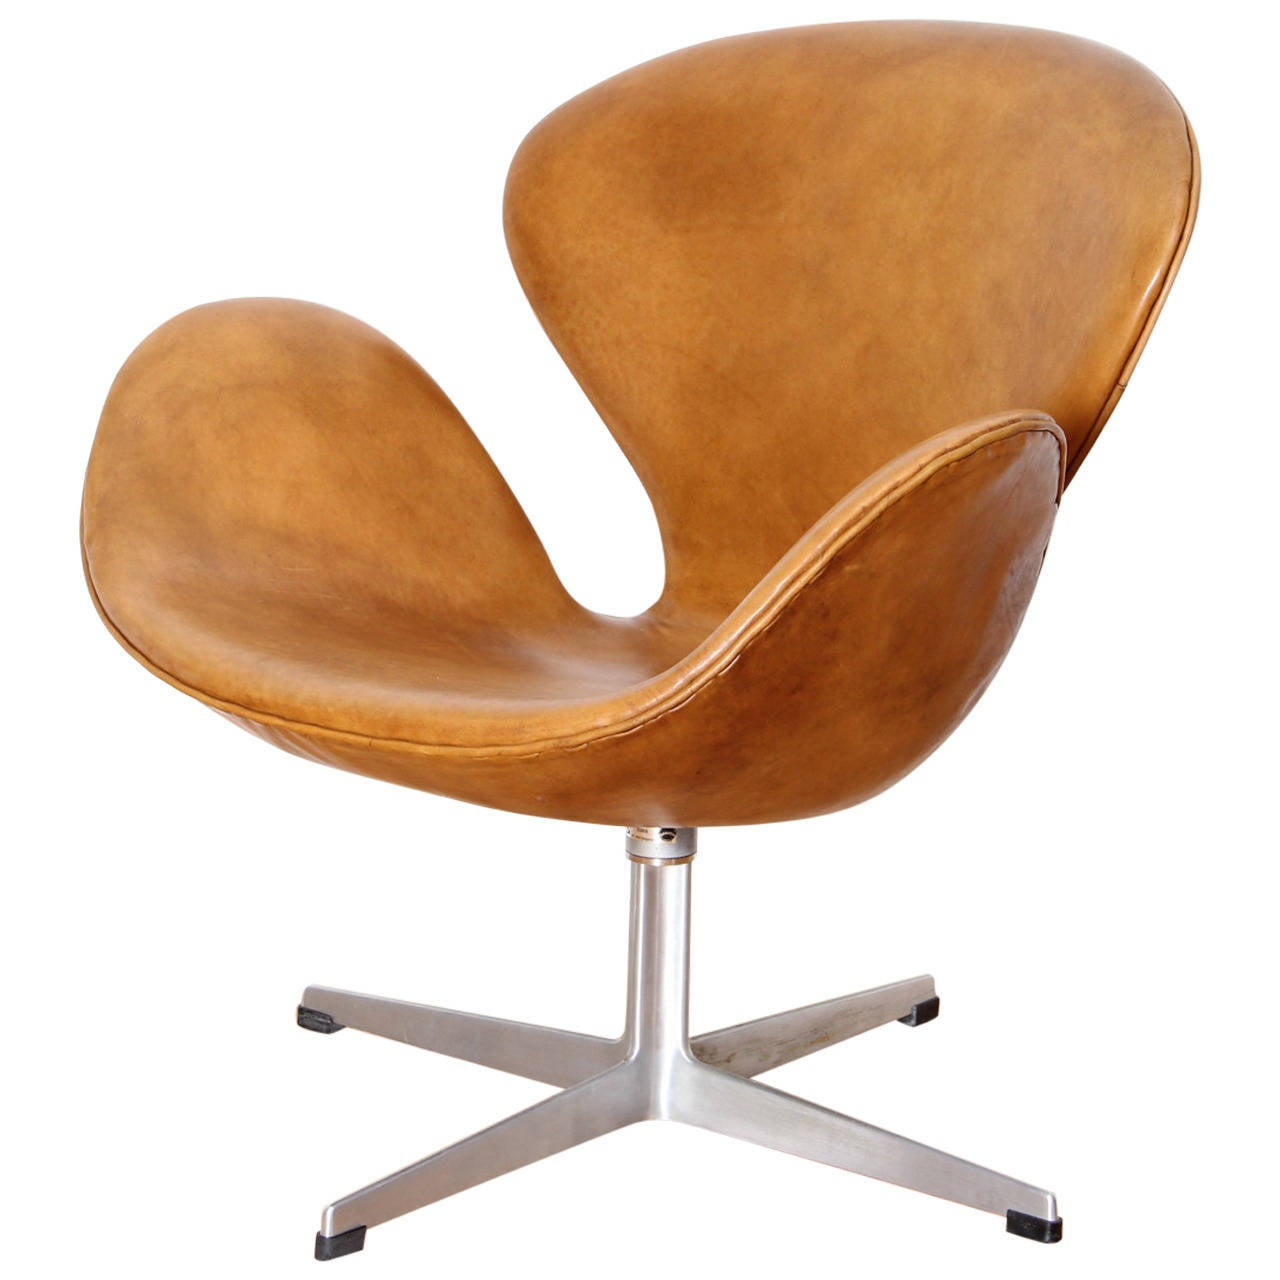 arne jacobsen swan chair french cross back dining chairs uk by produced fritz hansen from